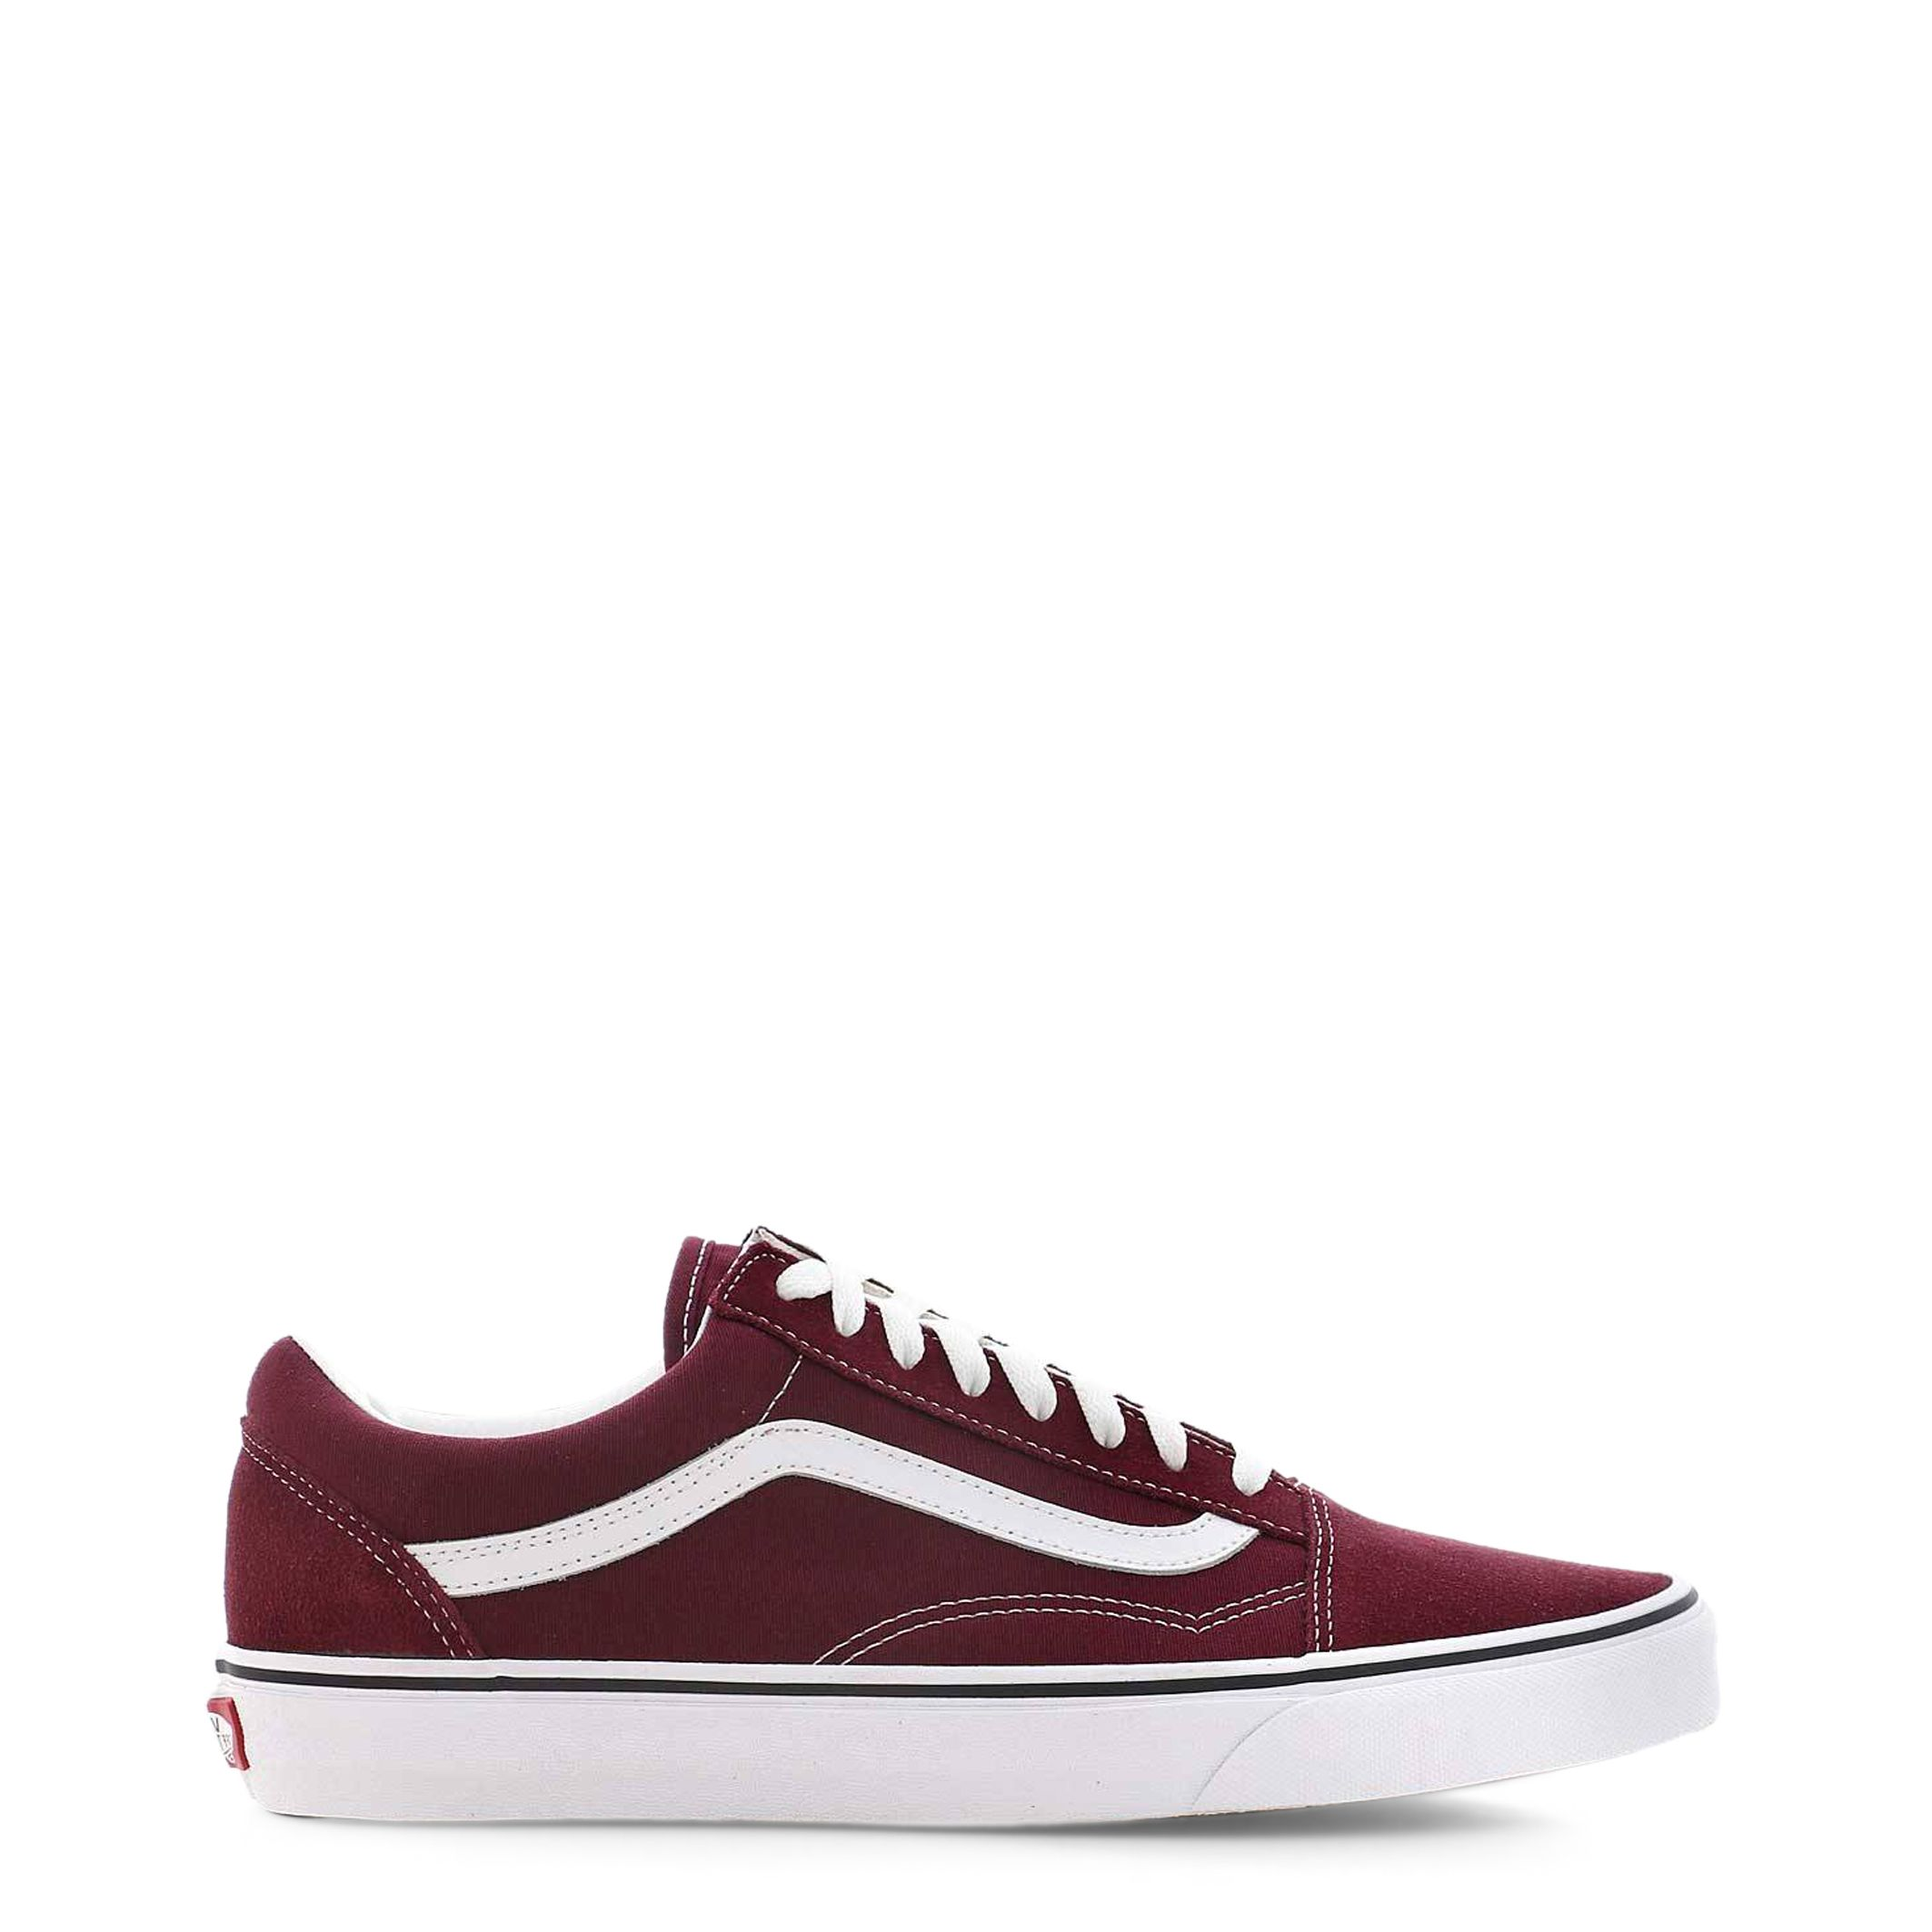 Shoes Vans – OLD-SKOOL_VN0A38G1